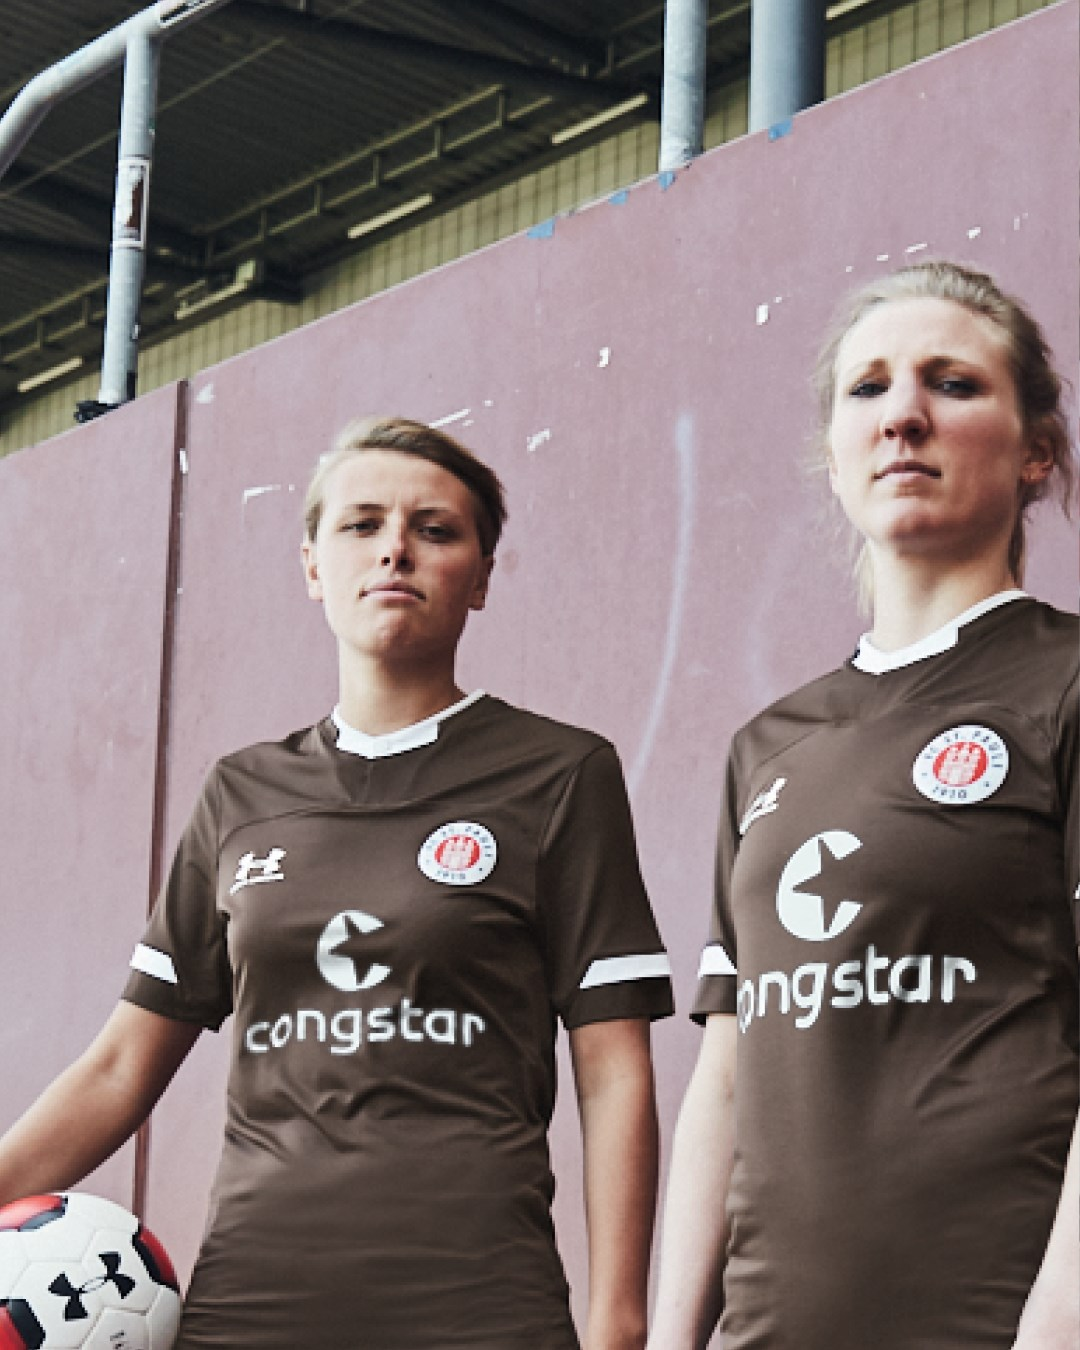 Ann-Sophie Greifenberg and Lena Kattenbeck in the new home shirt